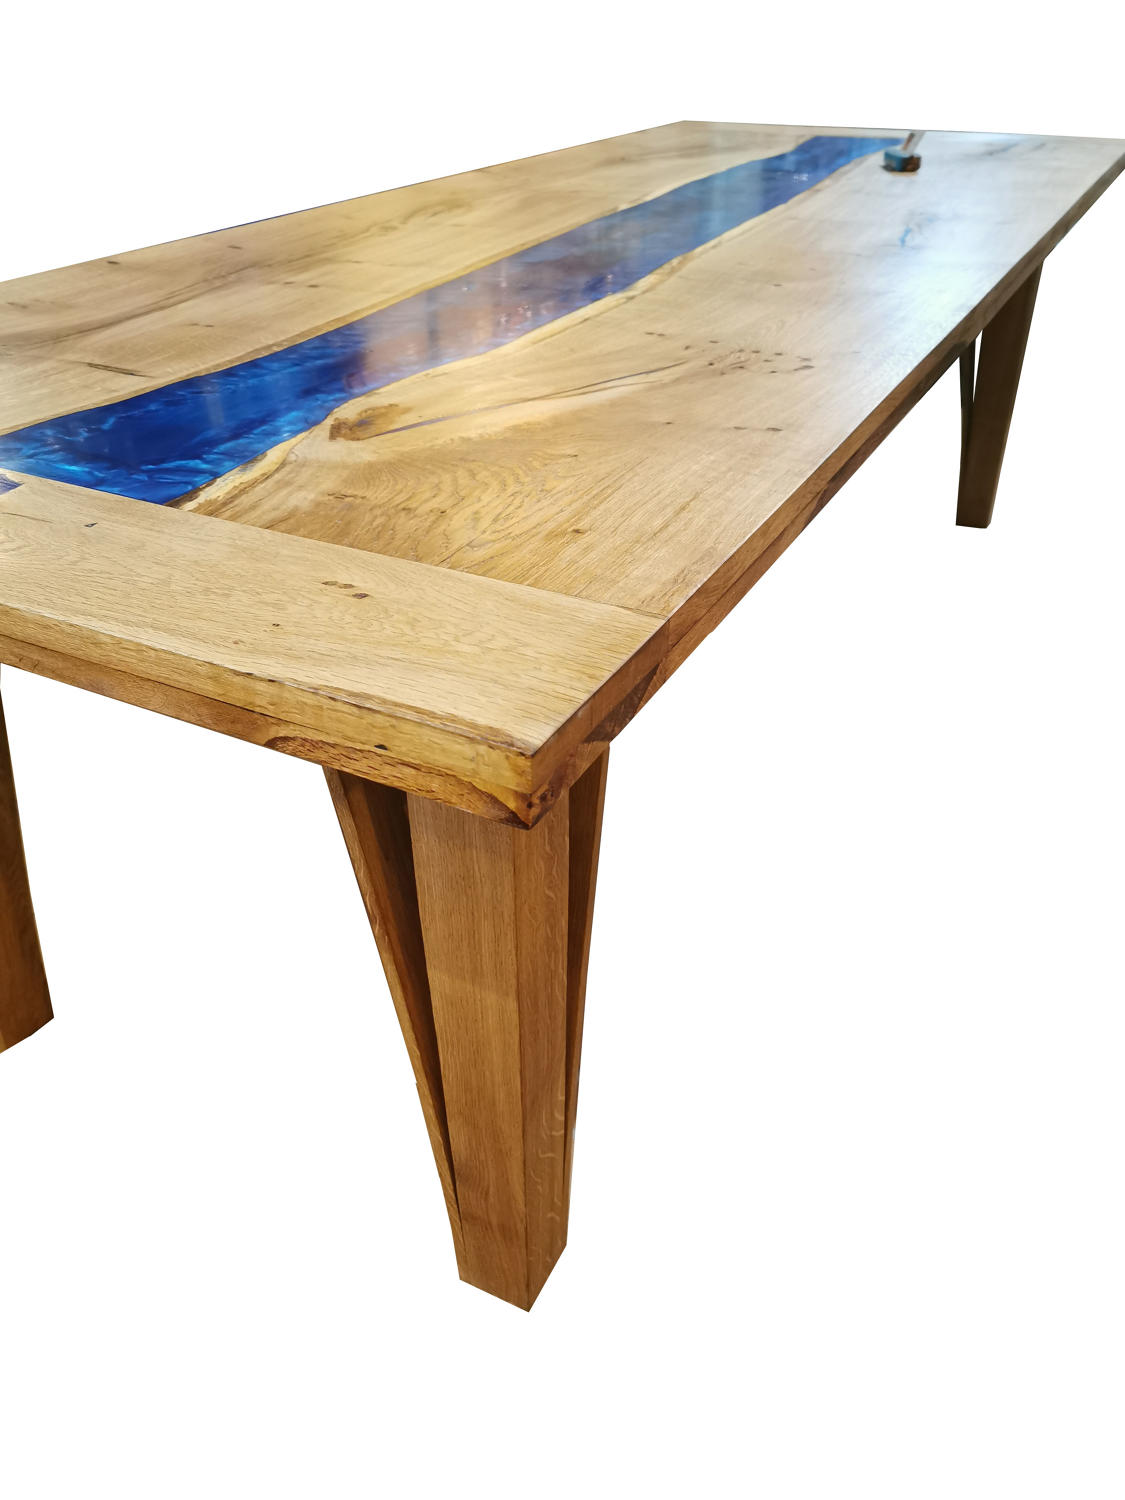 Contemporary river dining table oak and resin